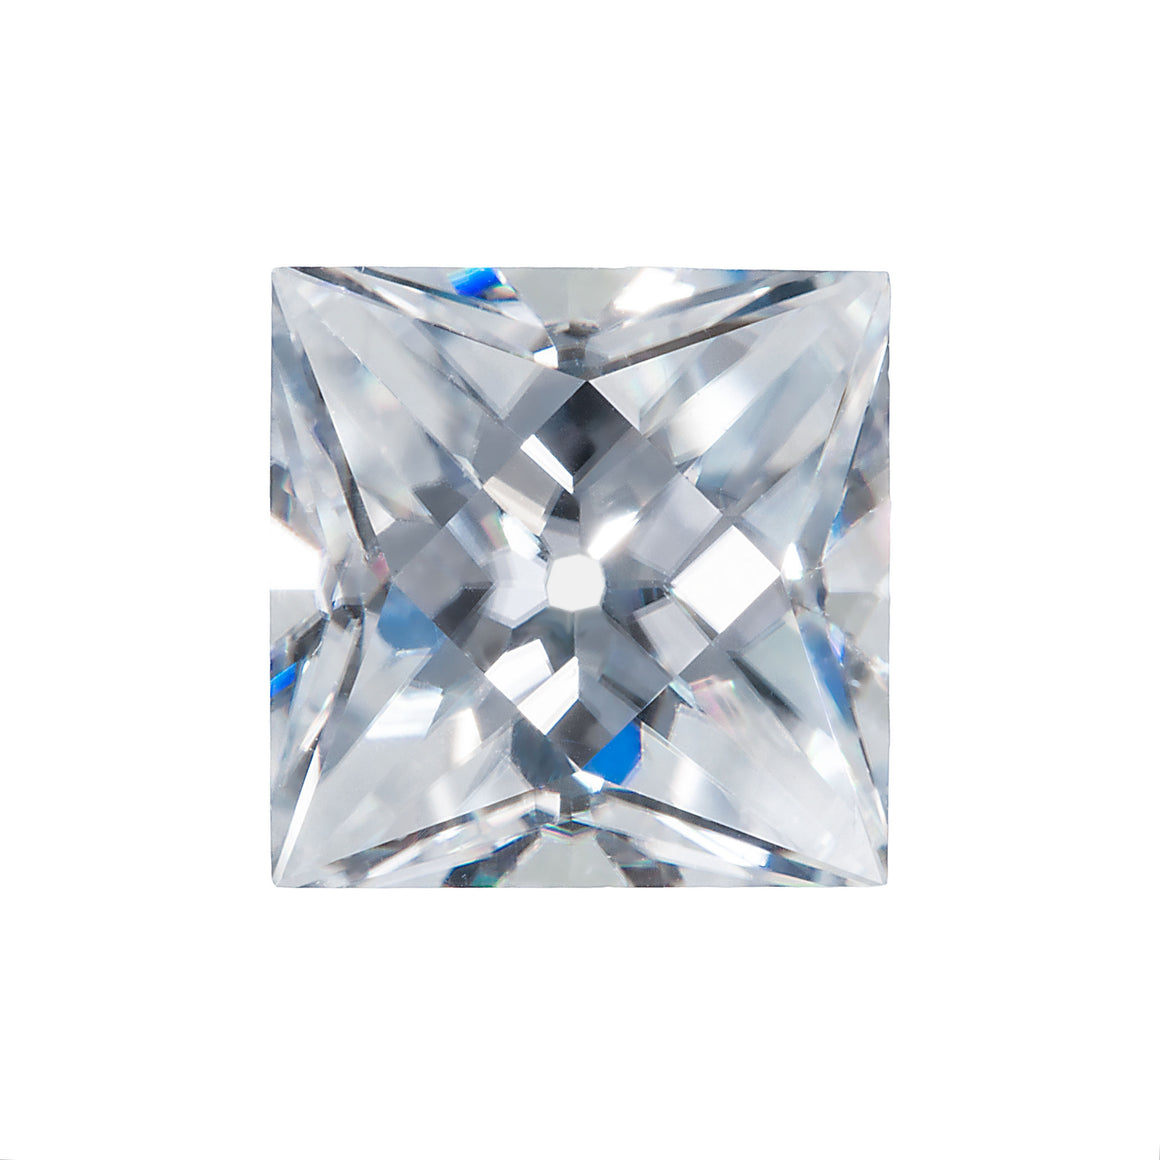 Harro Gem French Cut Pristine Moissanite